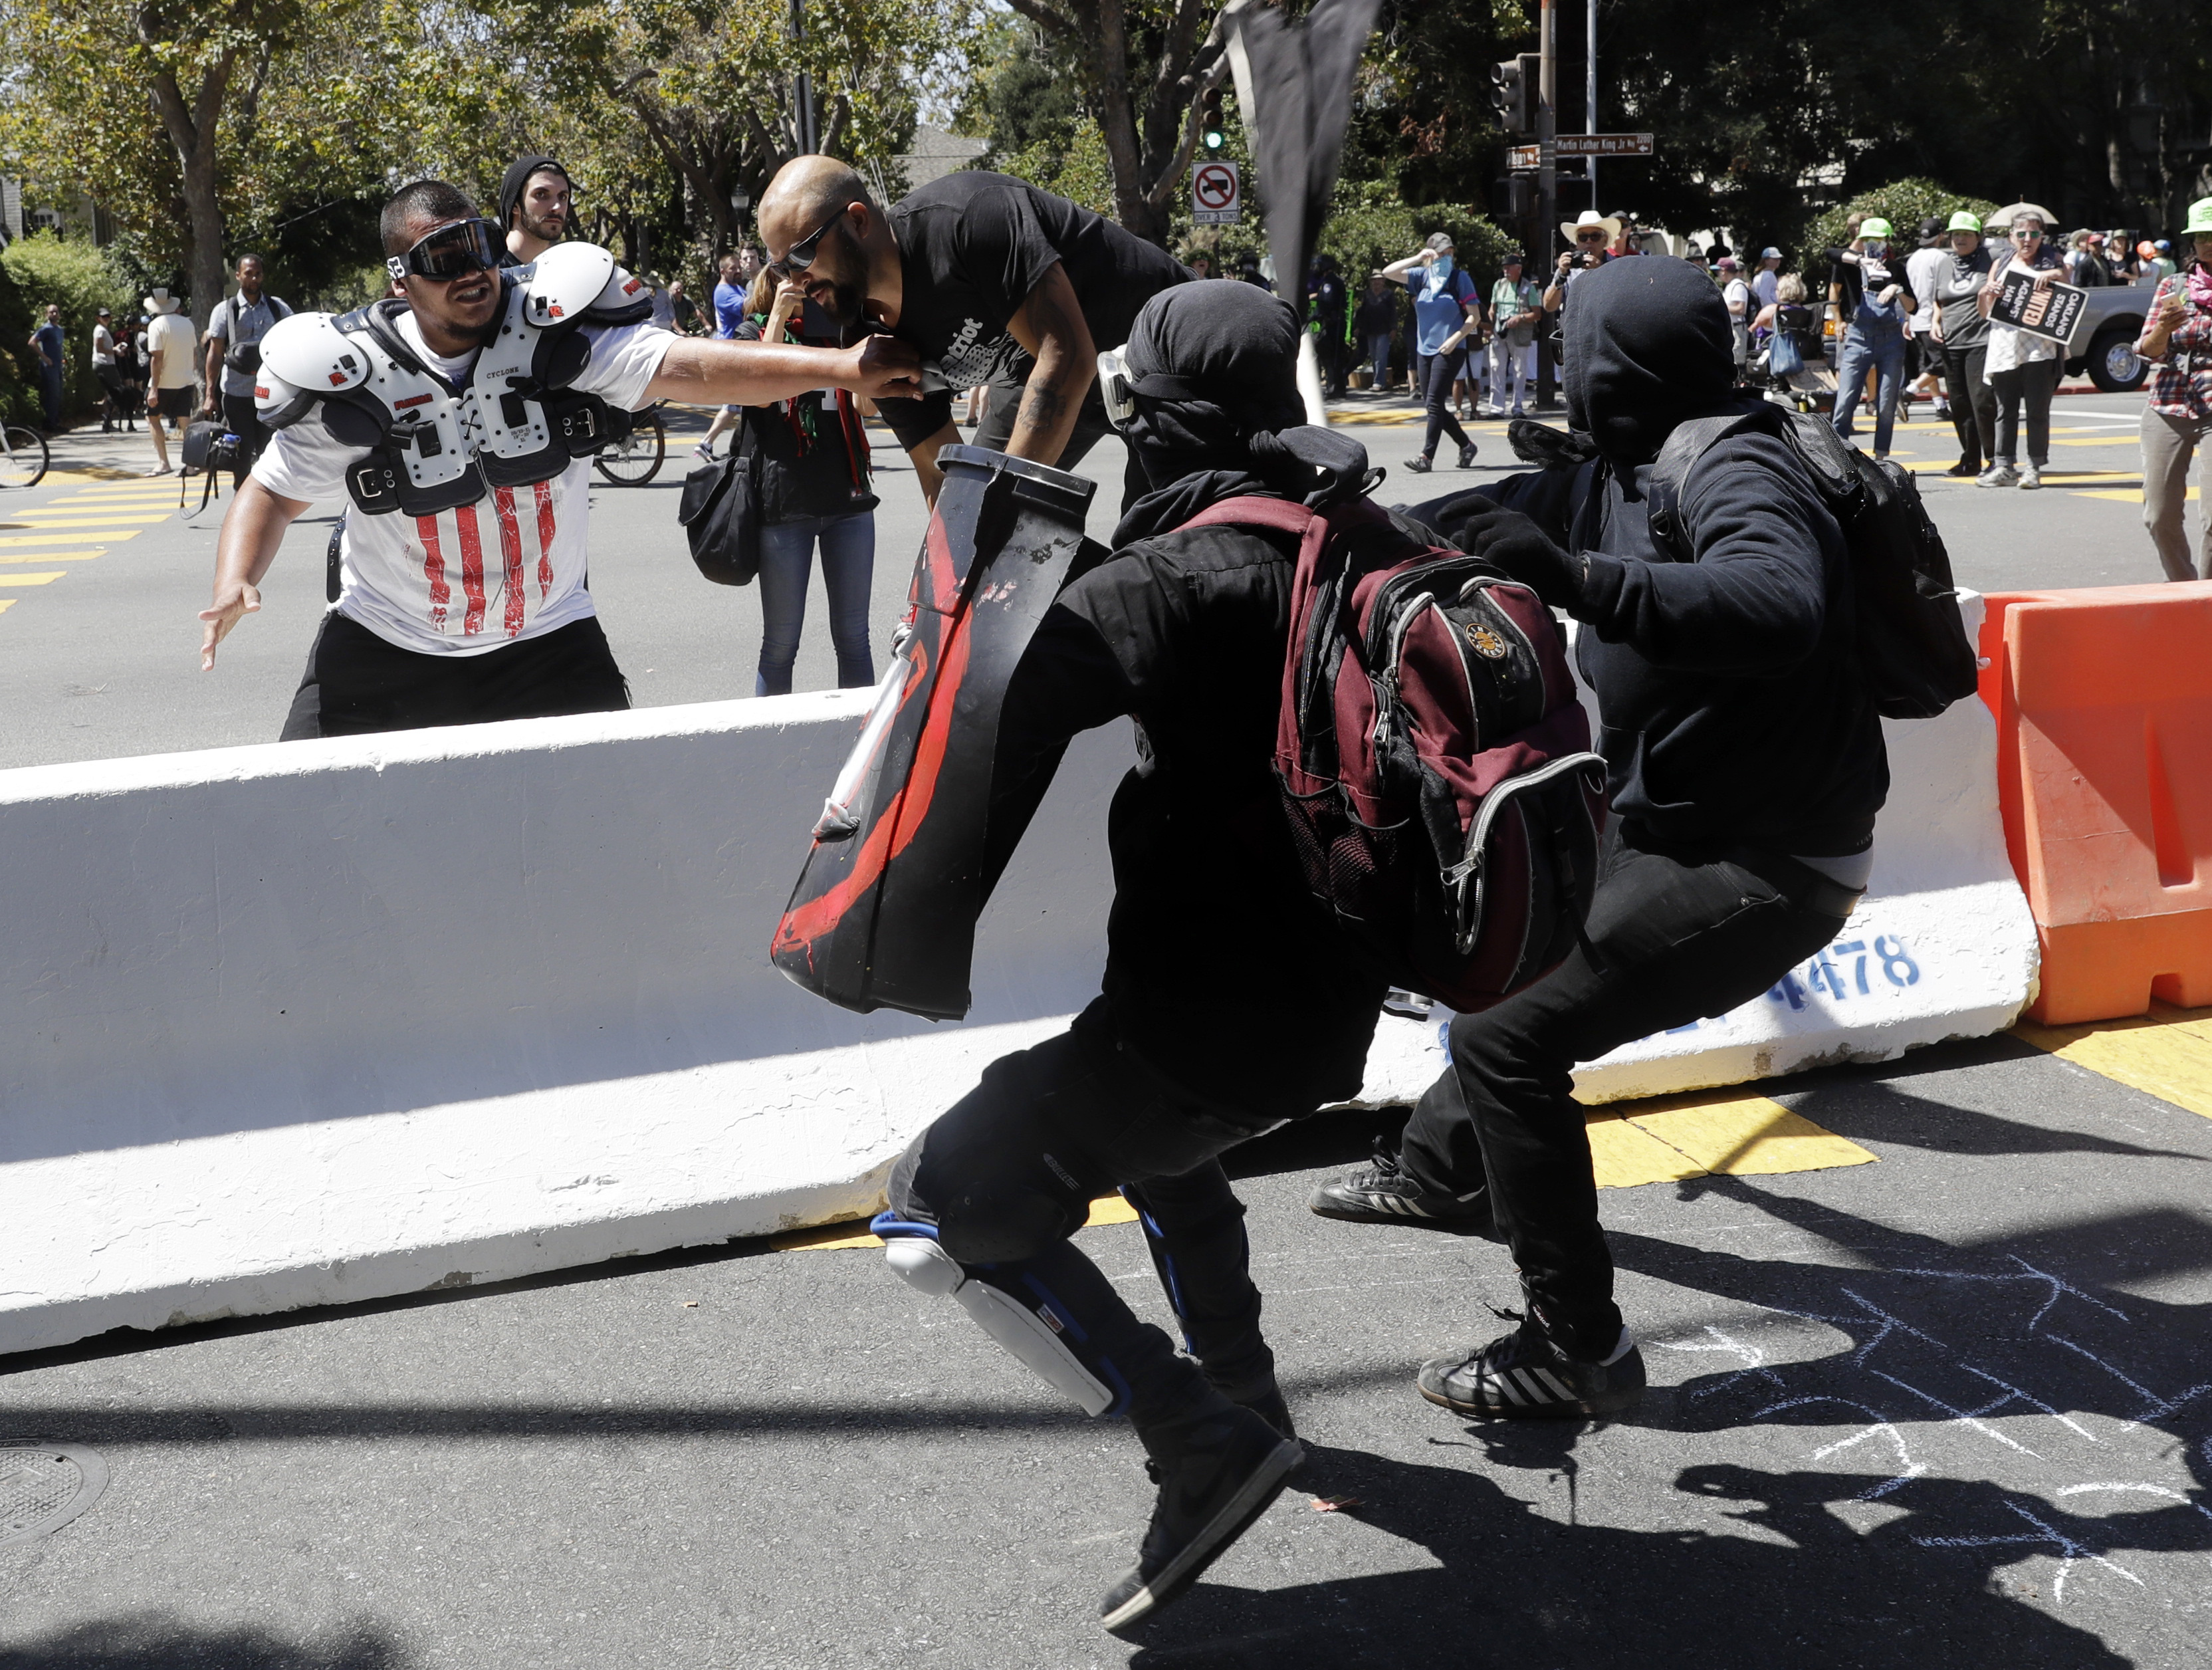 Black-clad antifa members attack peaceful right-wing demonstrators in  Berkeley - The Washington Post